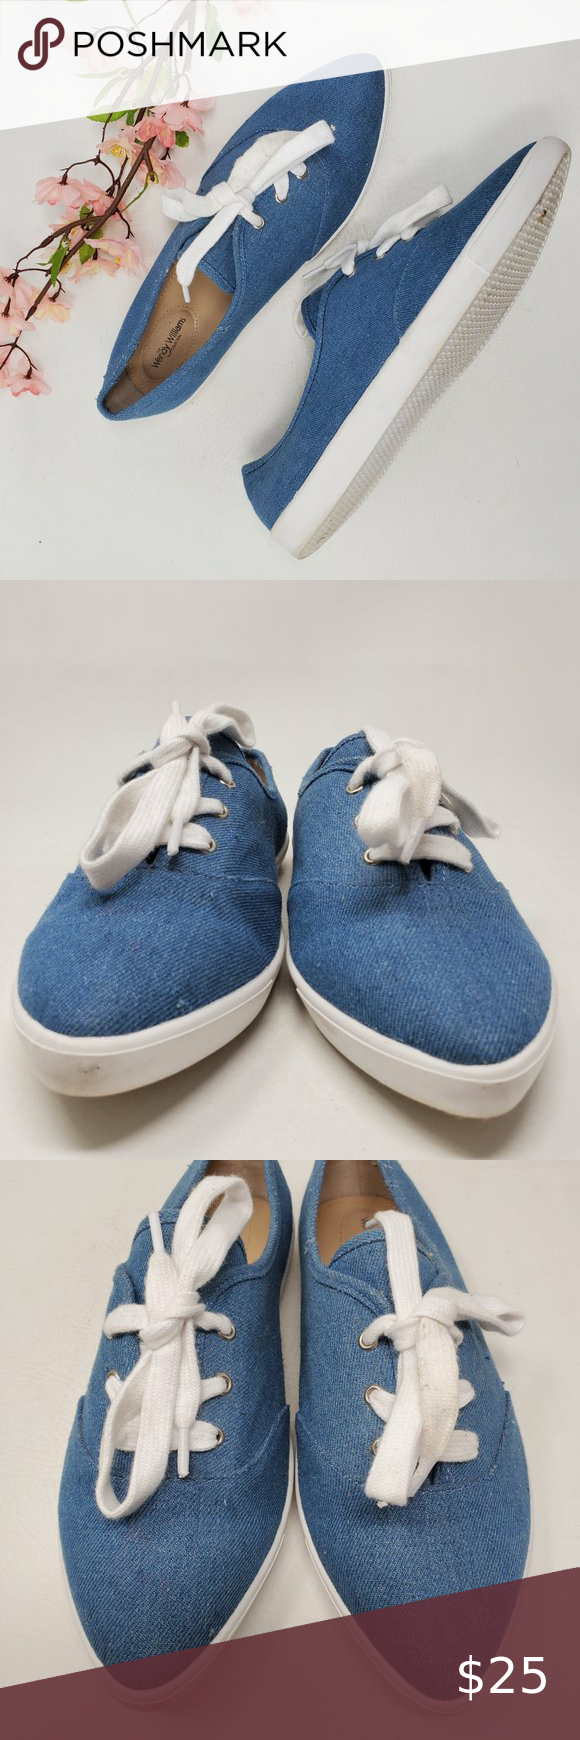 Wendy Williams Pointed Toe Sneakers Blue Canvas 9 Thank you for stopping in! These are in excellent preowned condition and were only worn a few times.  Please see all pictures as they are the best descriptors.  • Brand: The Wendy William Collection  • Style: Fashion Sneakers  • Color: Blue   • Material: Fabric    • Size: 9 Medium • Sole: 3 3/8